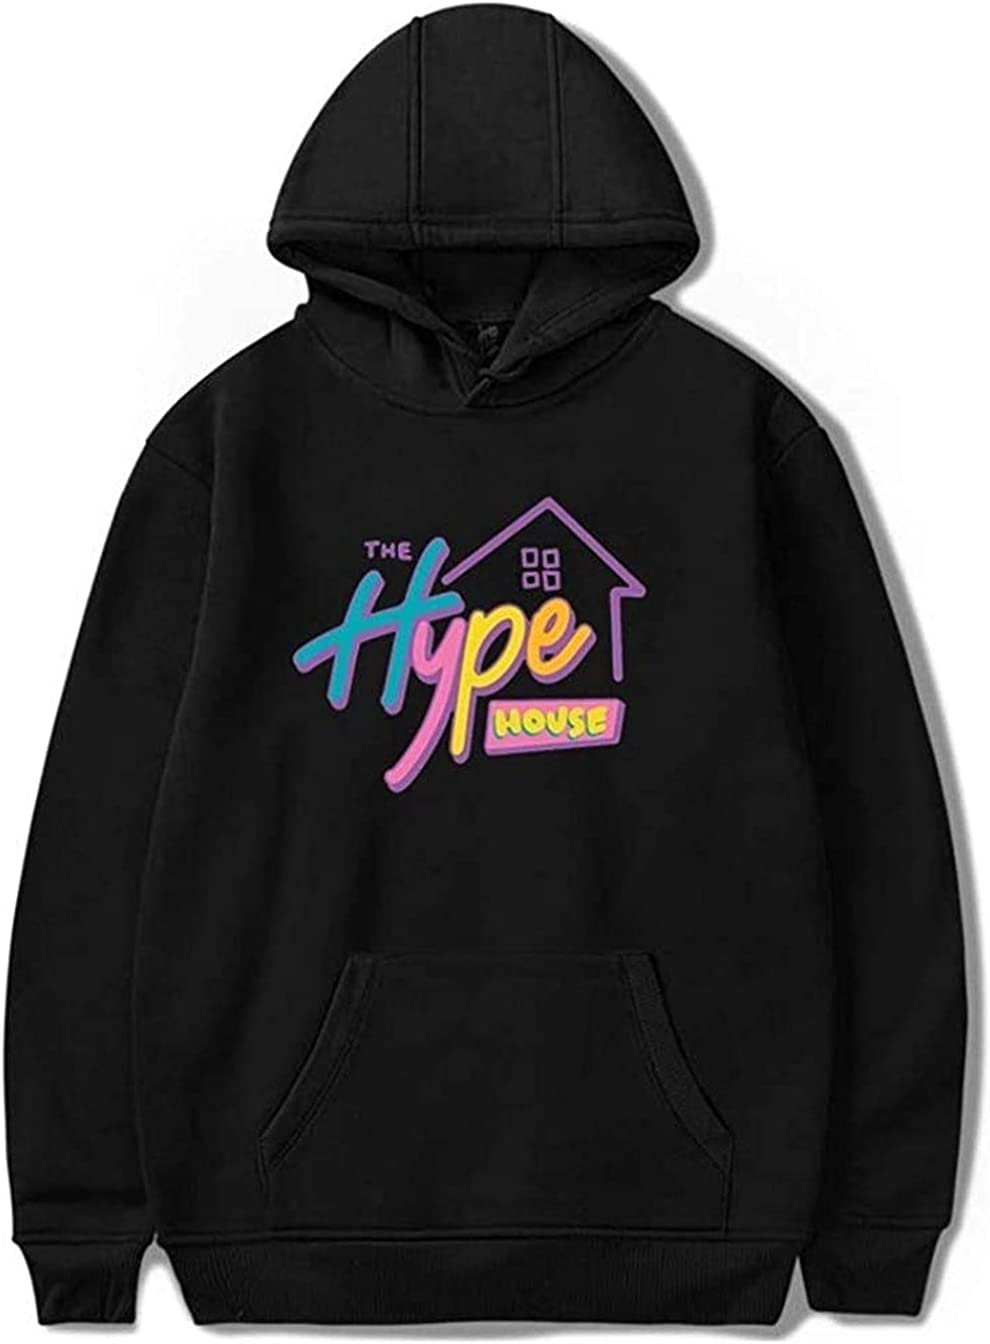 Mesa Mall The Hype House Hoodies New color Sweatshirts Men Women Unis Pullover Print